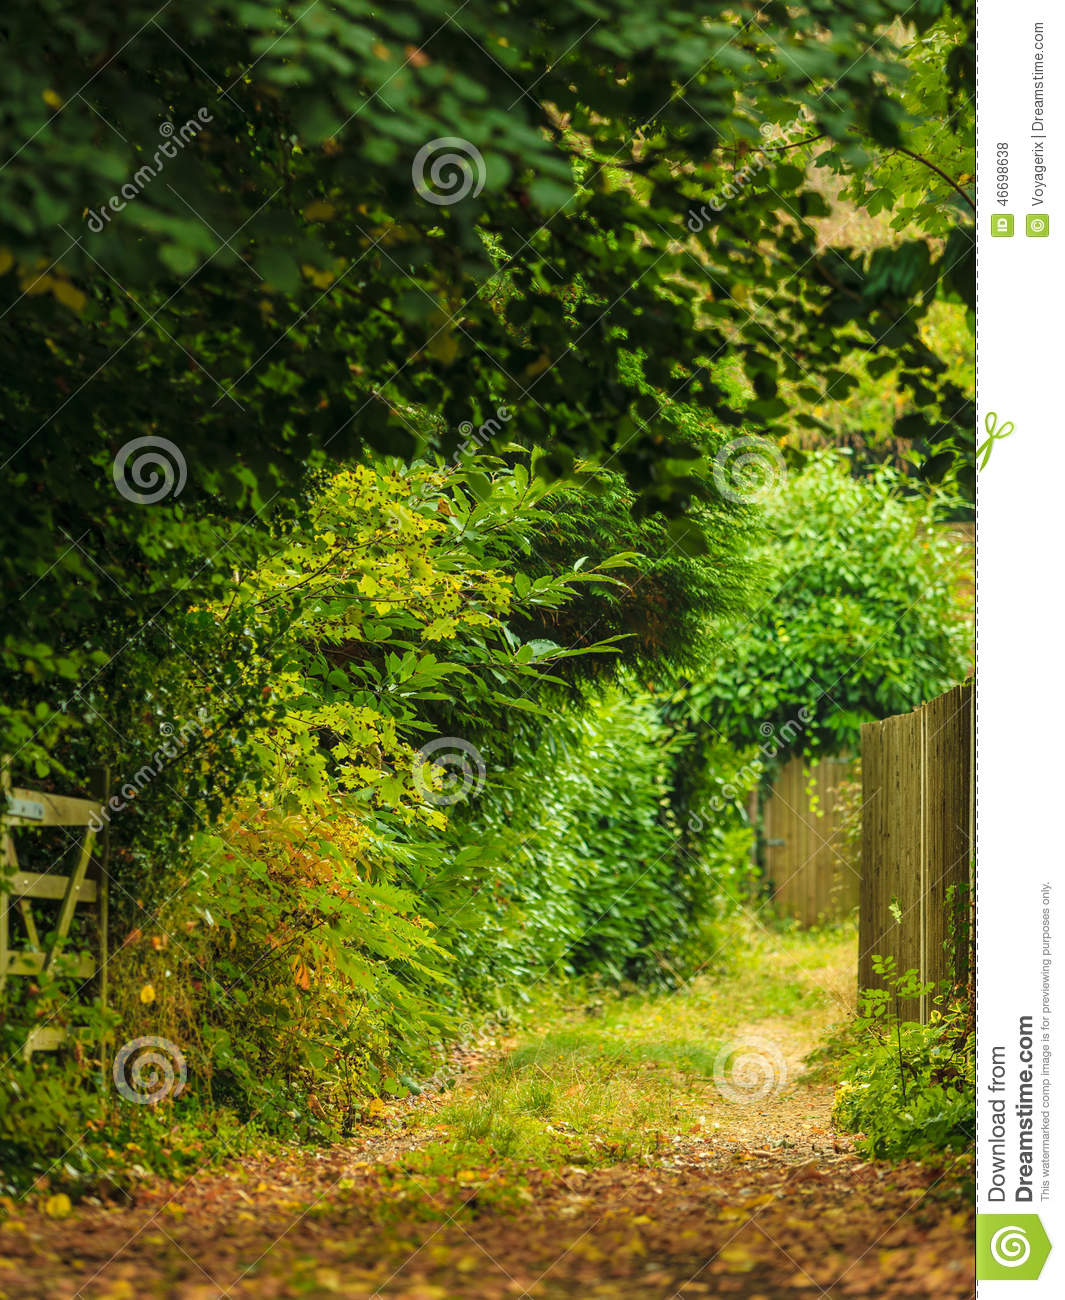 Nature Summer Landscape Countryside View And Rustic Gate Stock